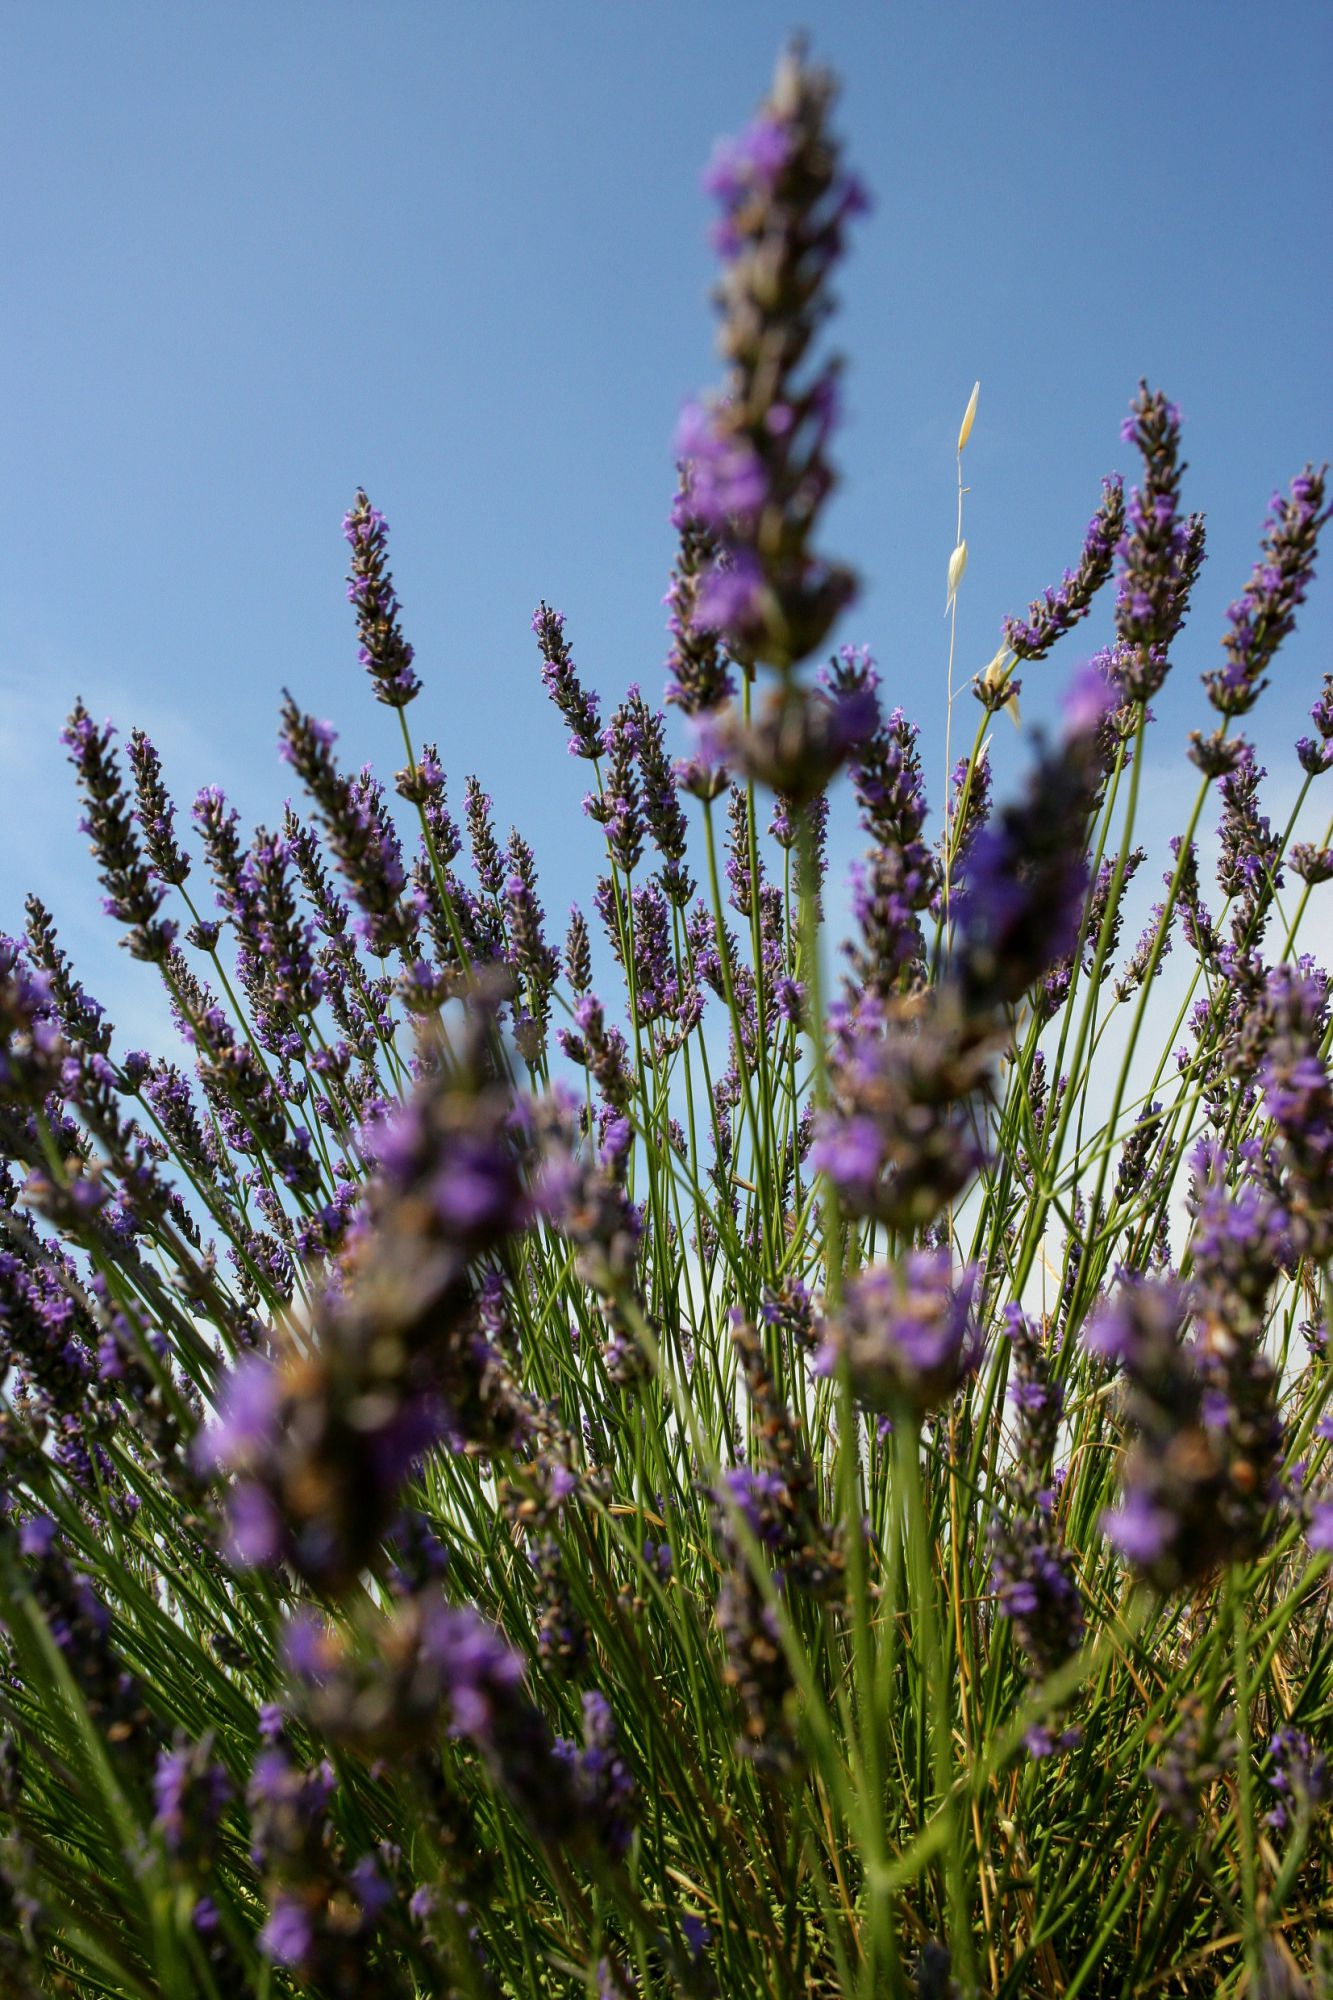 Lavender, a useful plant in the kitchen and in medicine. © Phovoir